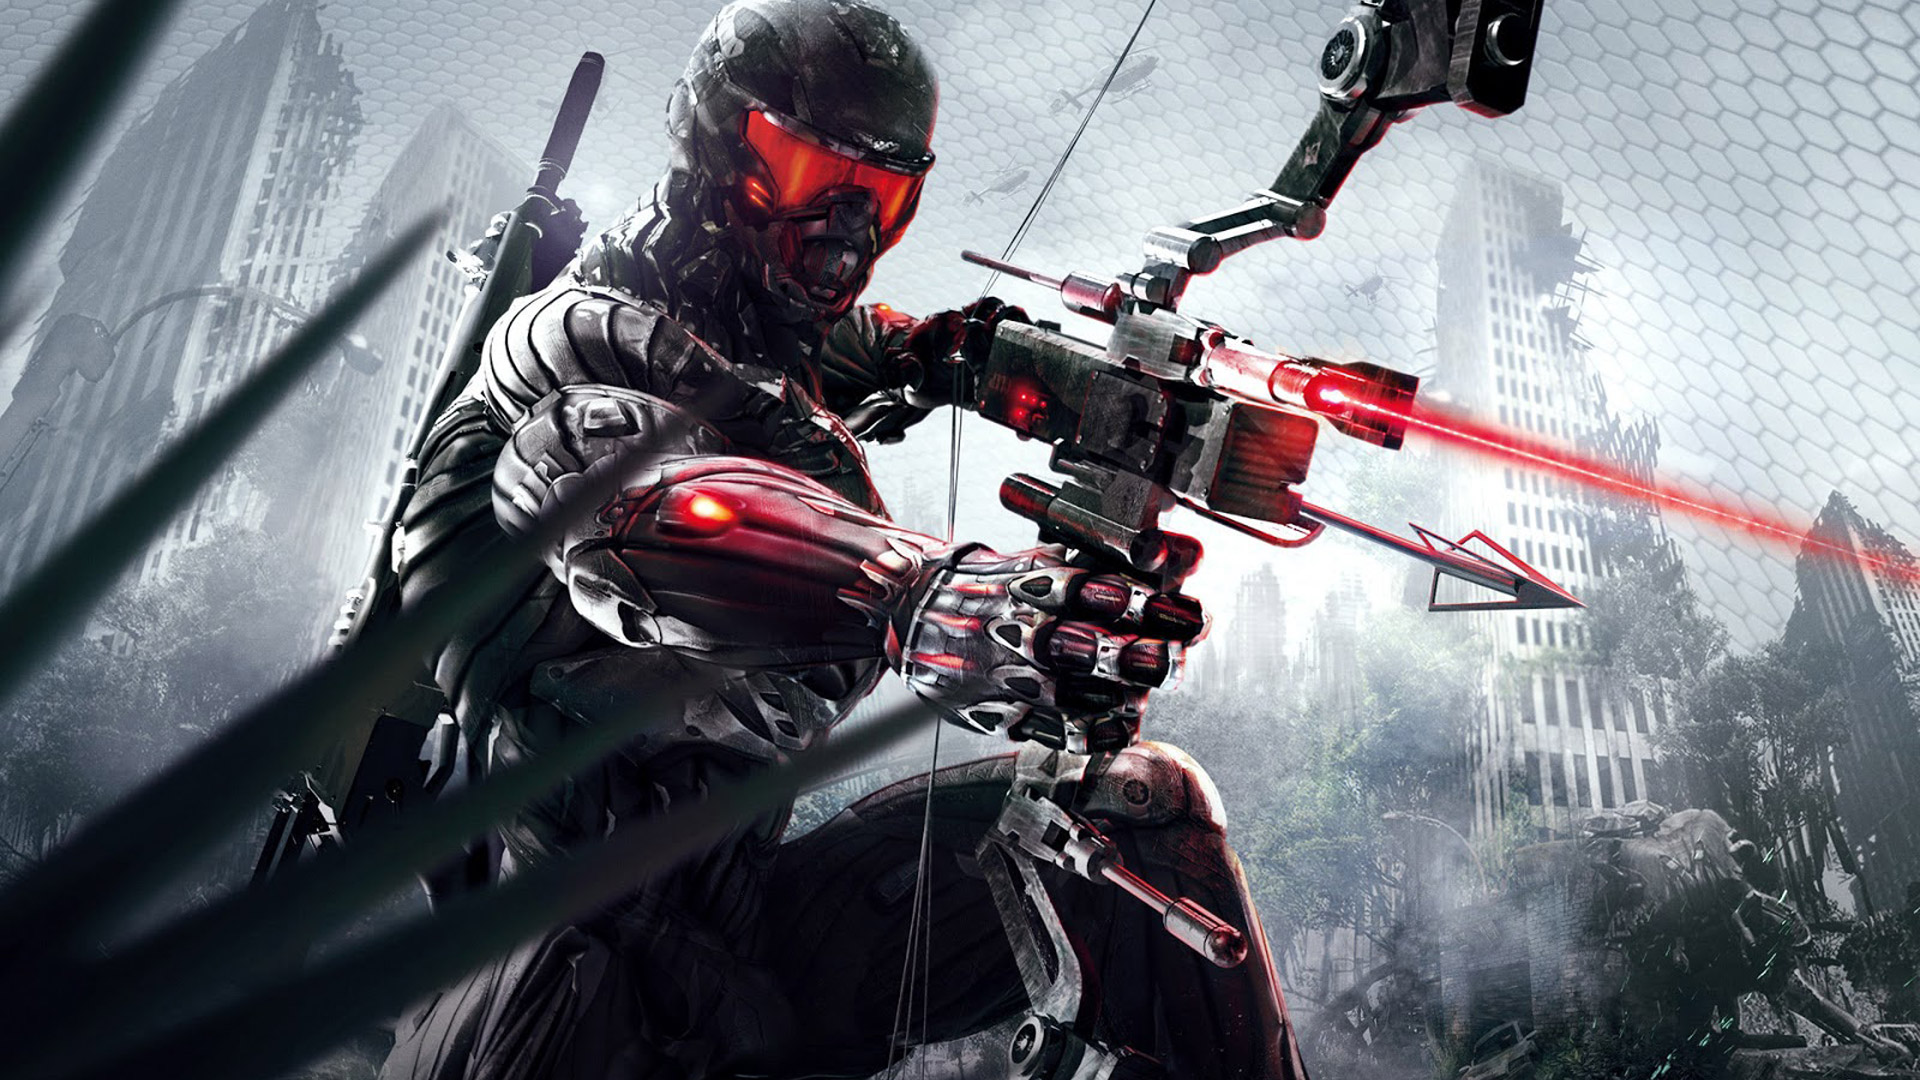 4k on a budget: the crysis trilogy